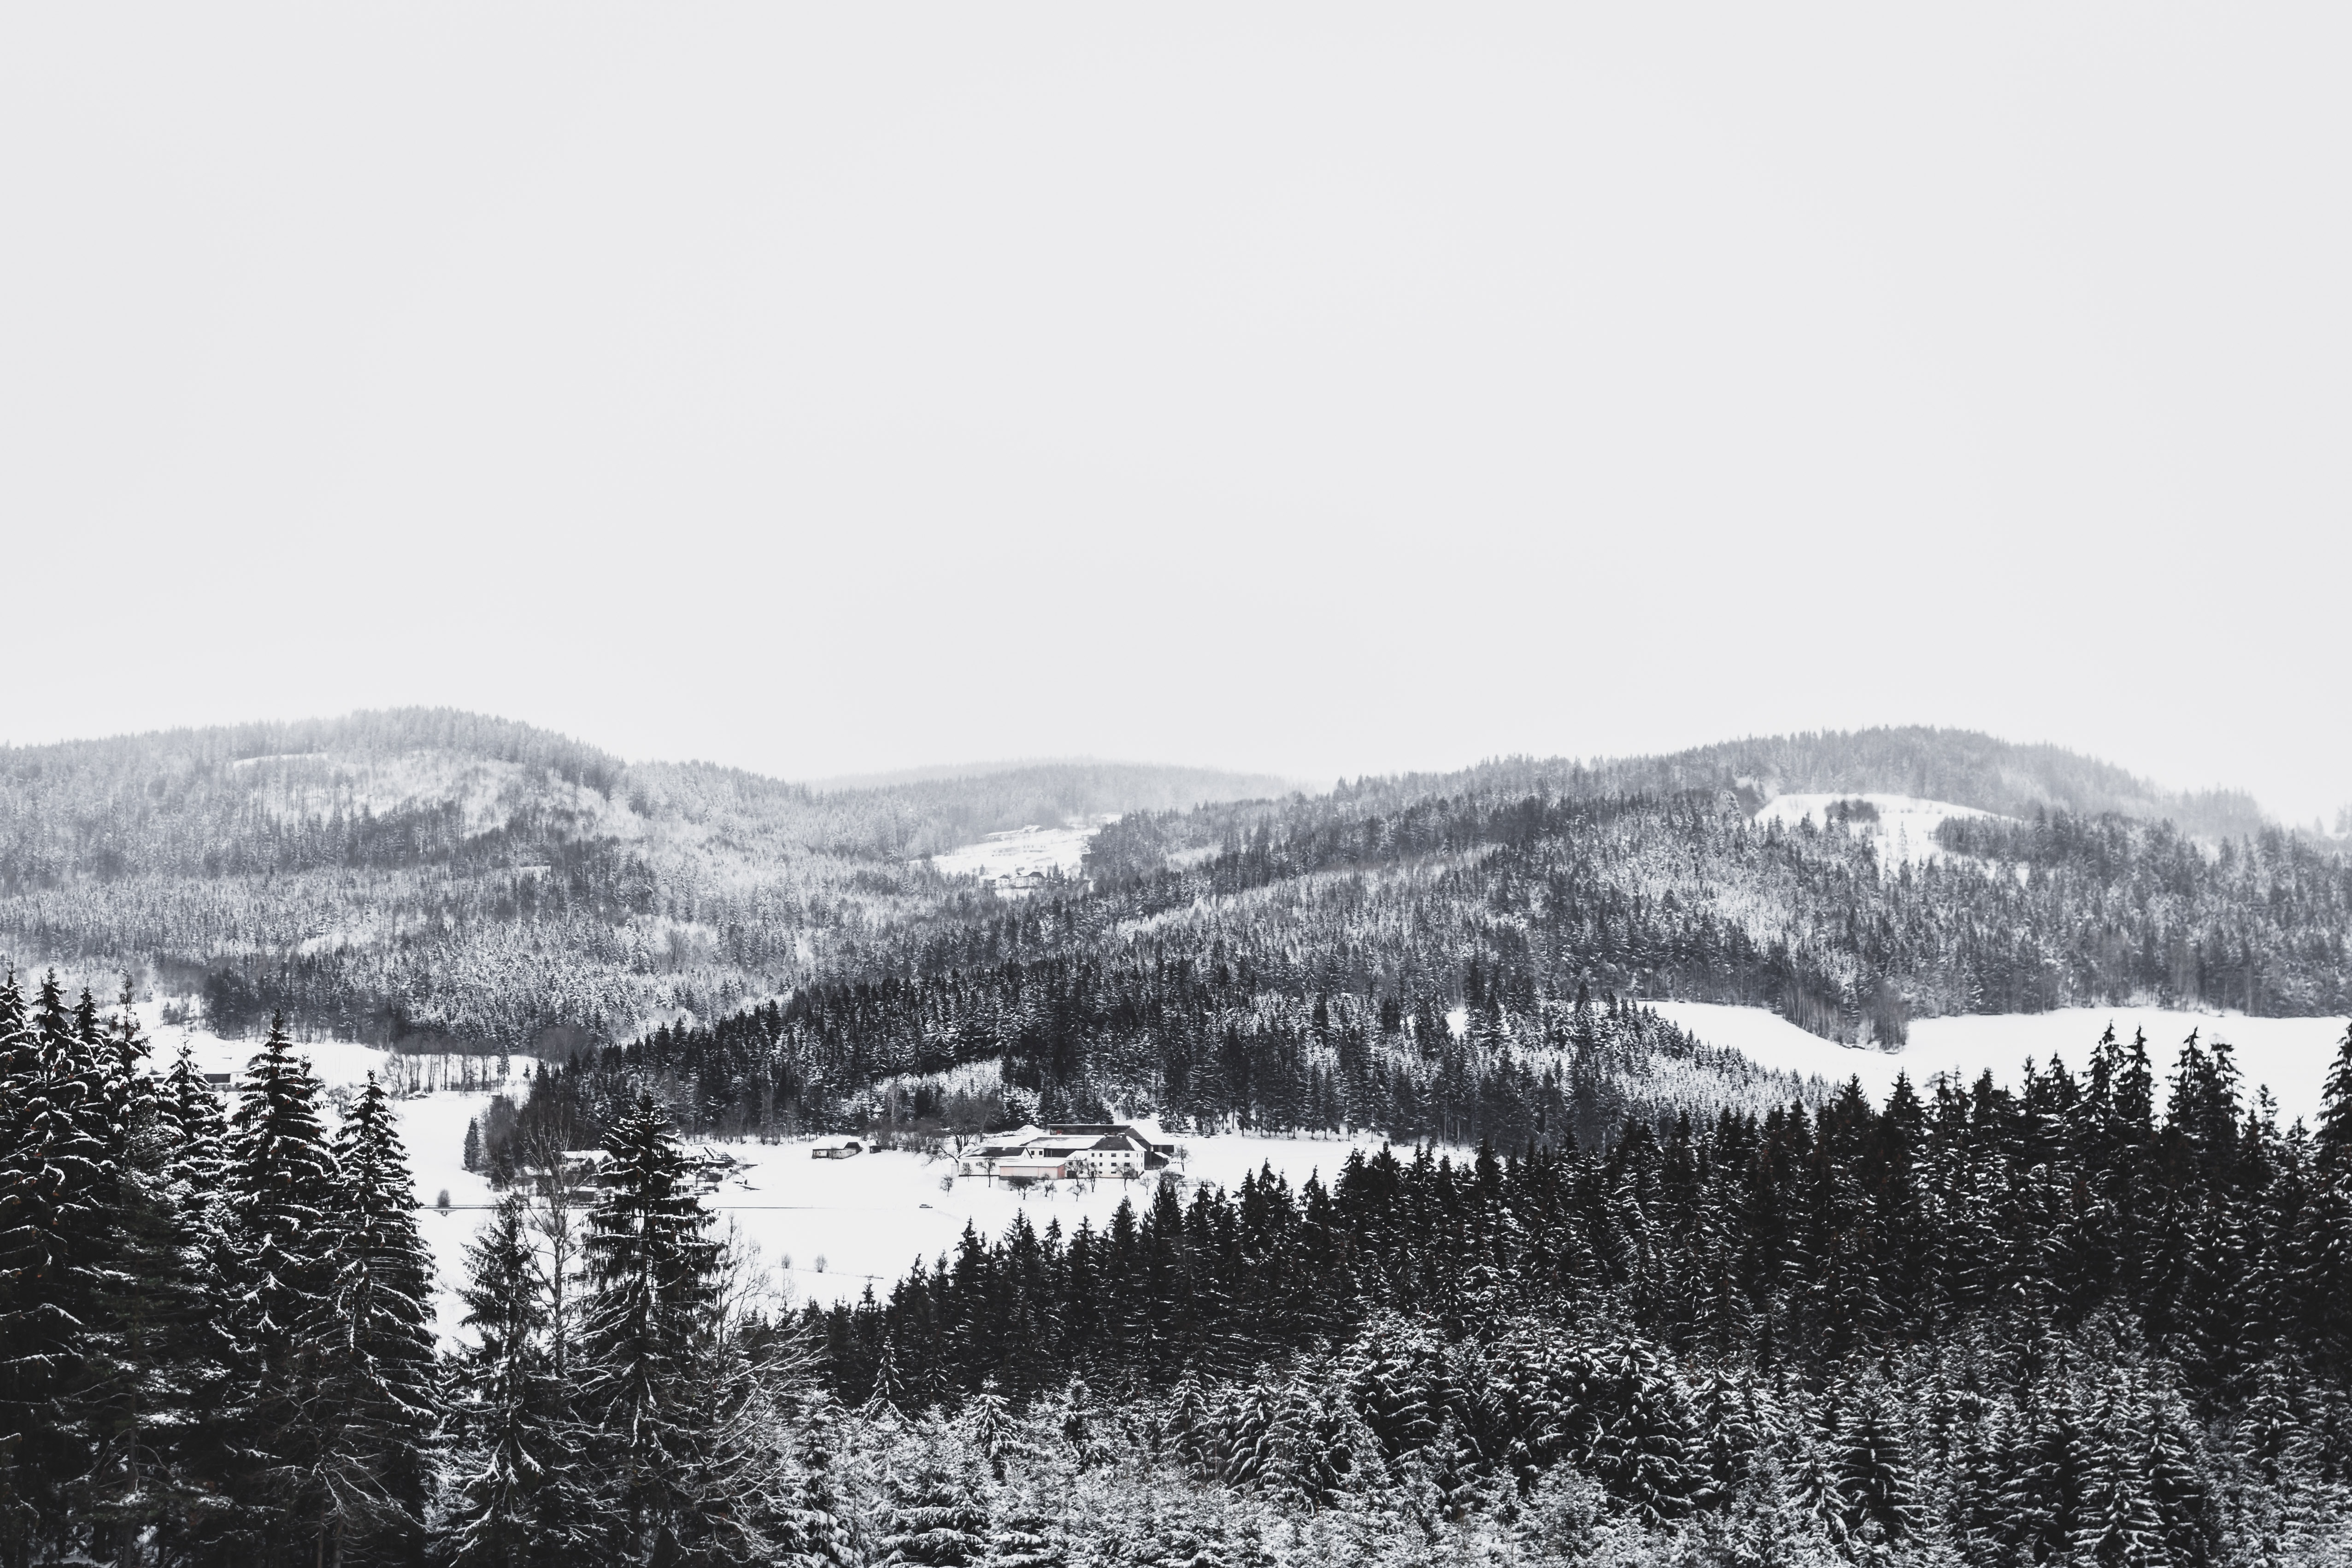 Dense forest trees in the snow with a mountains done in black and white